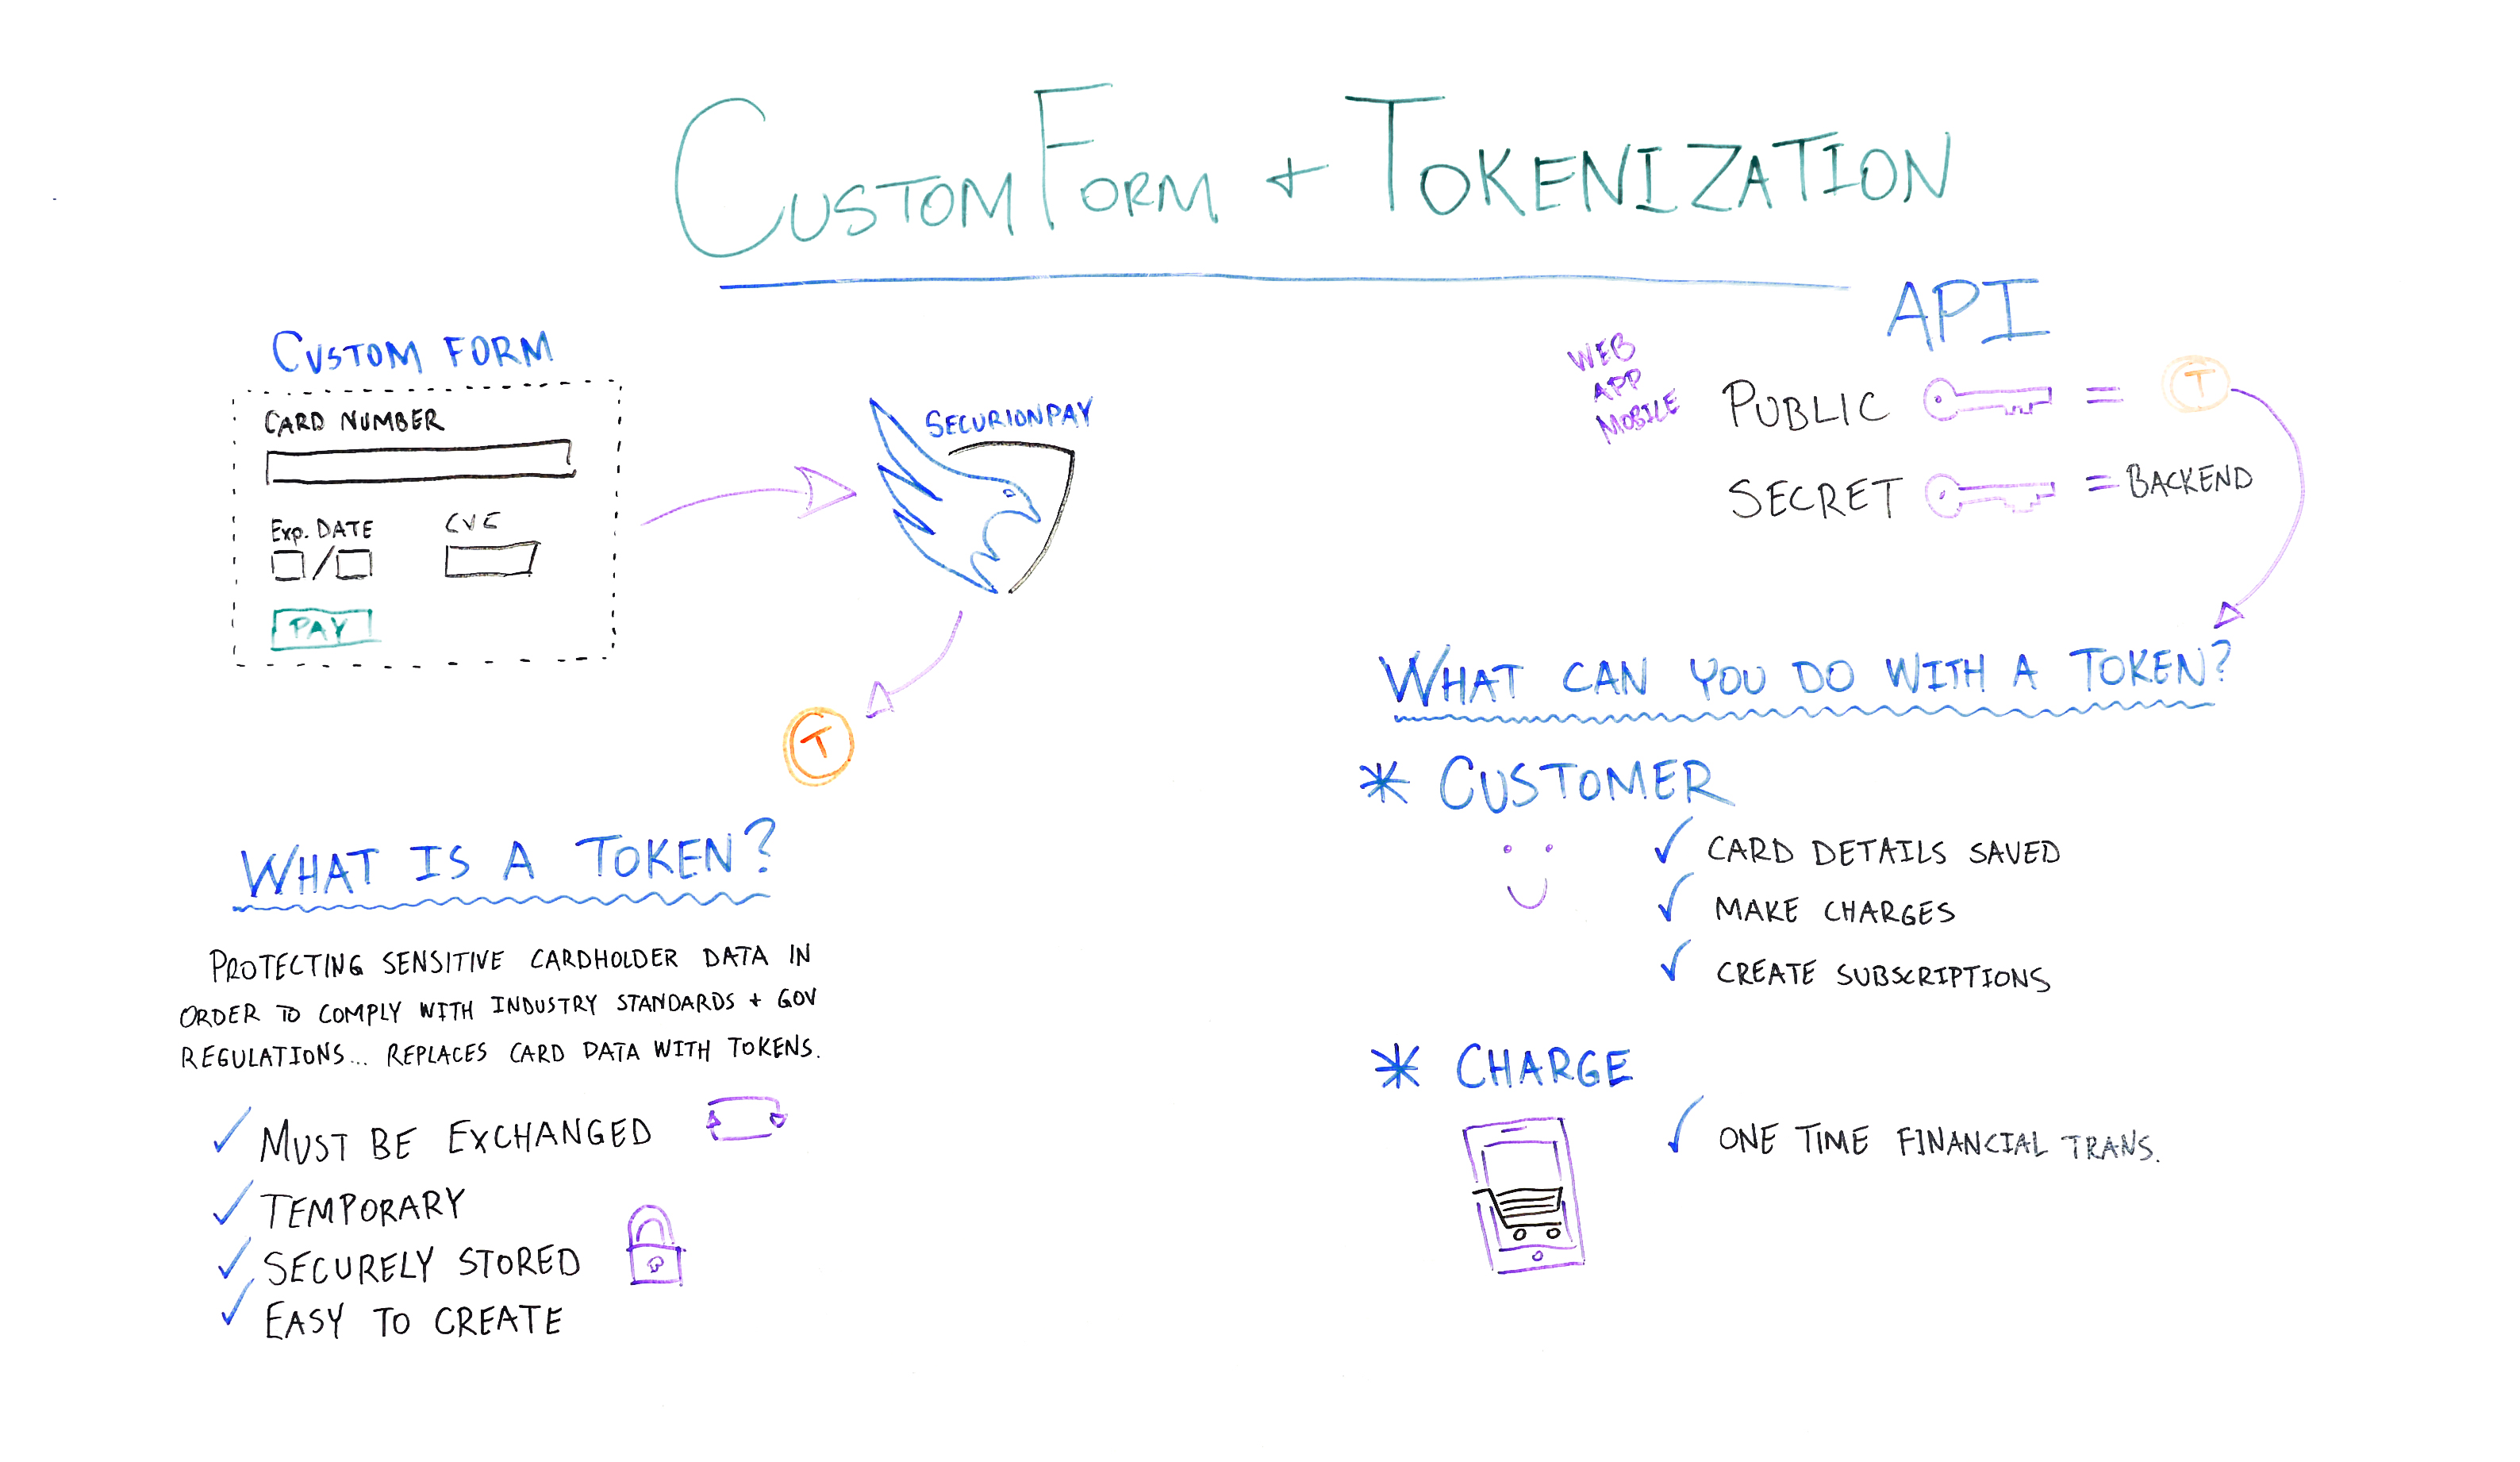 Tokenization and Custom Form